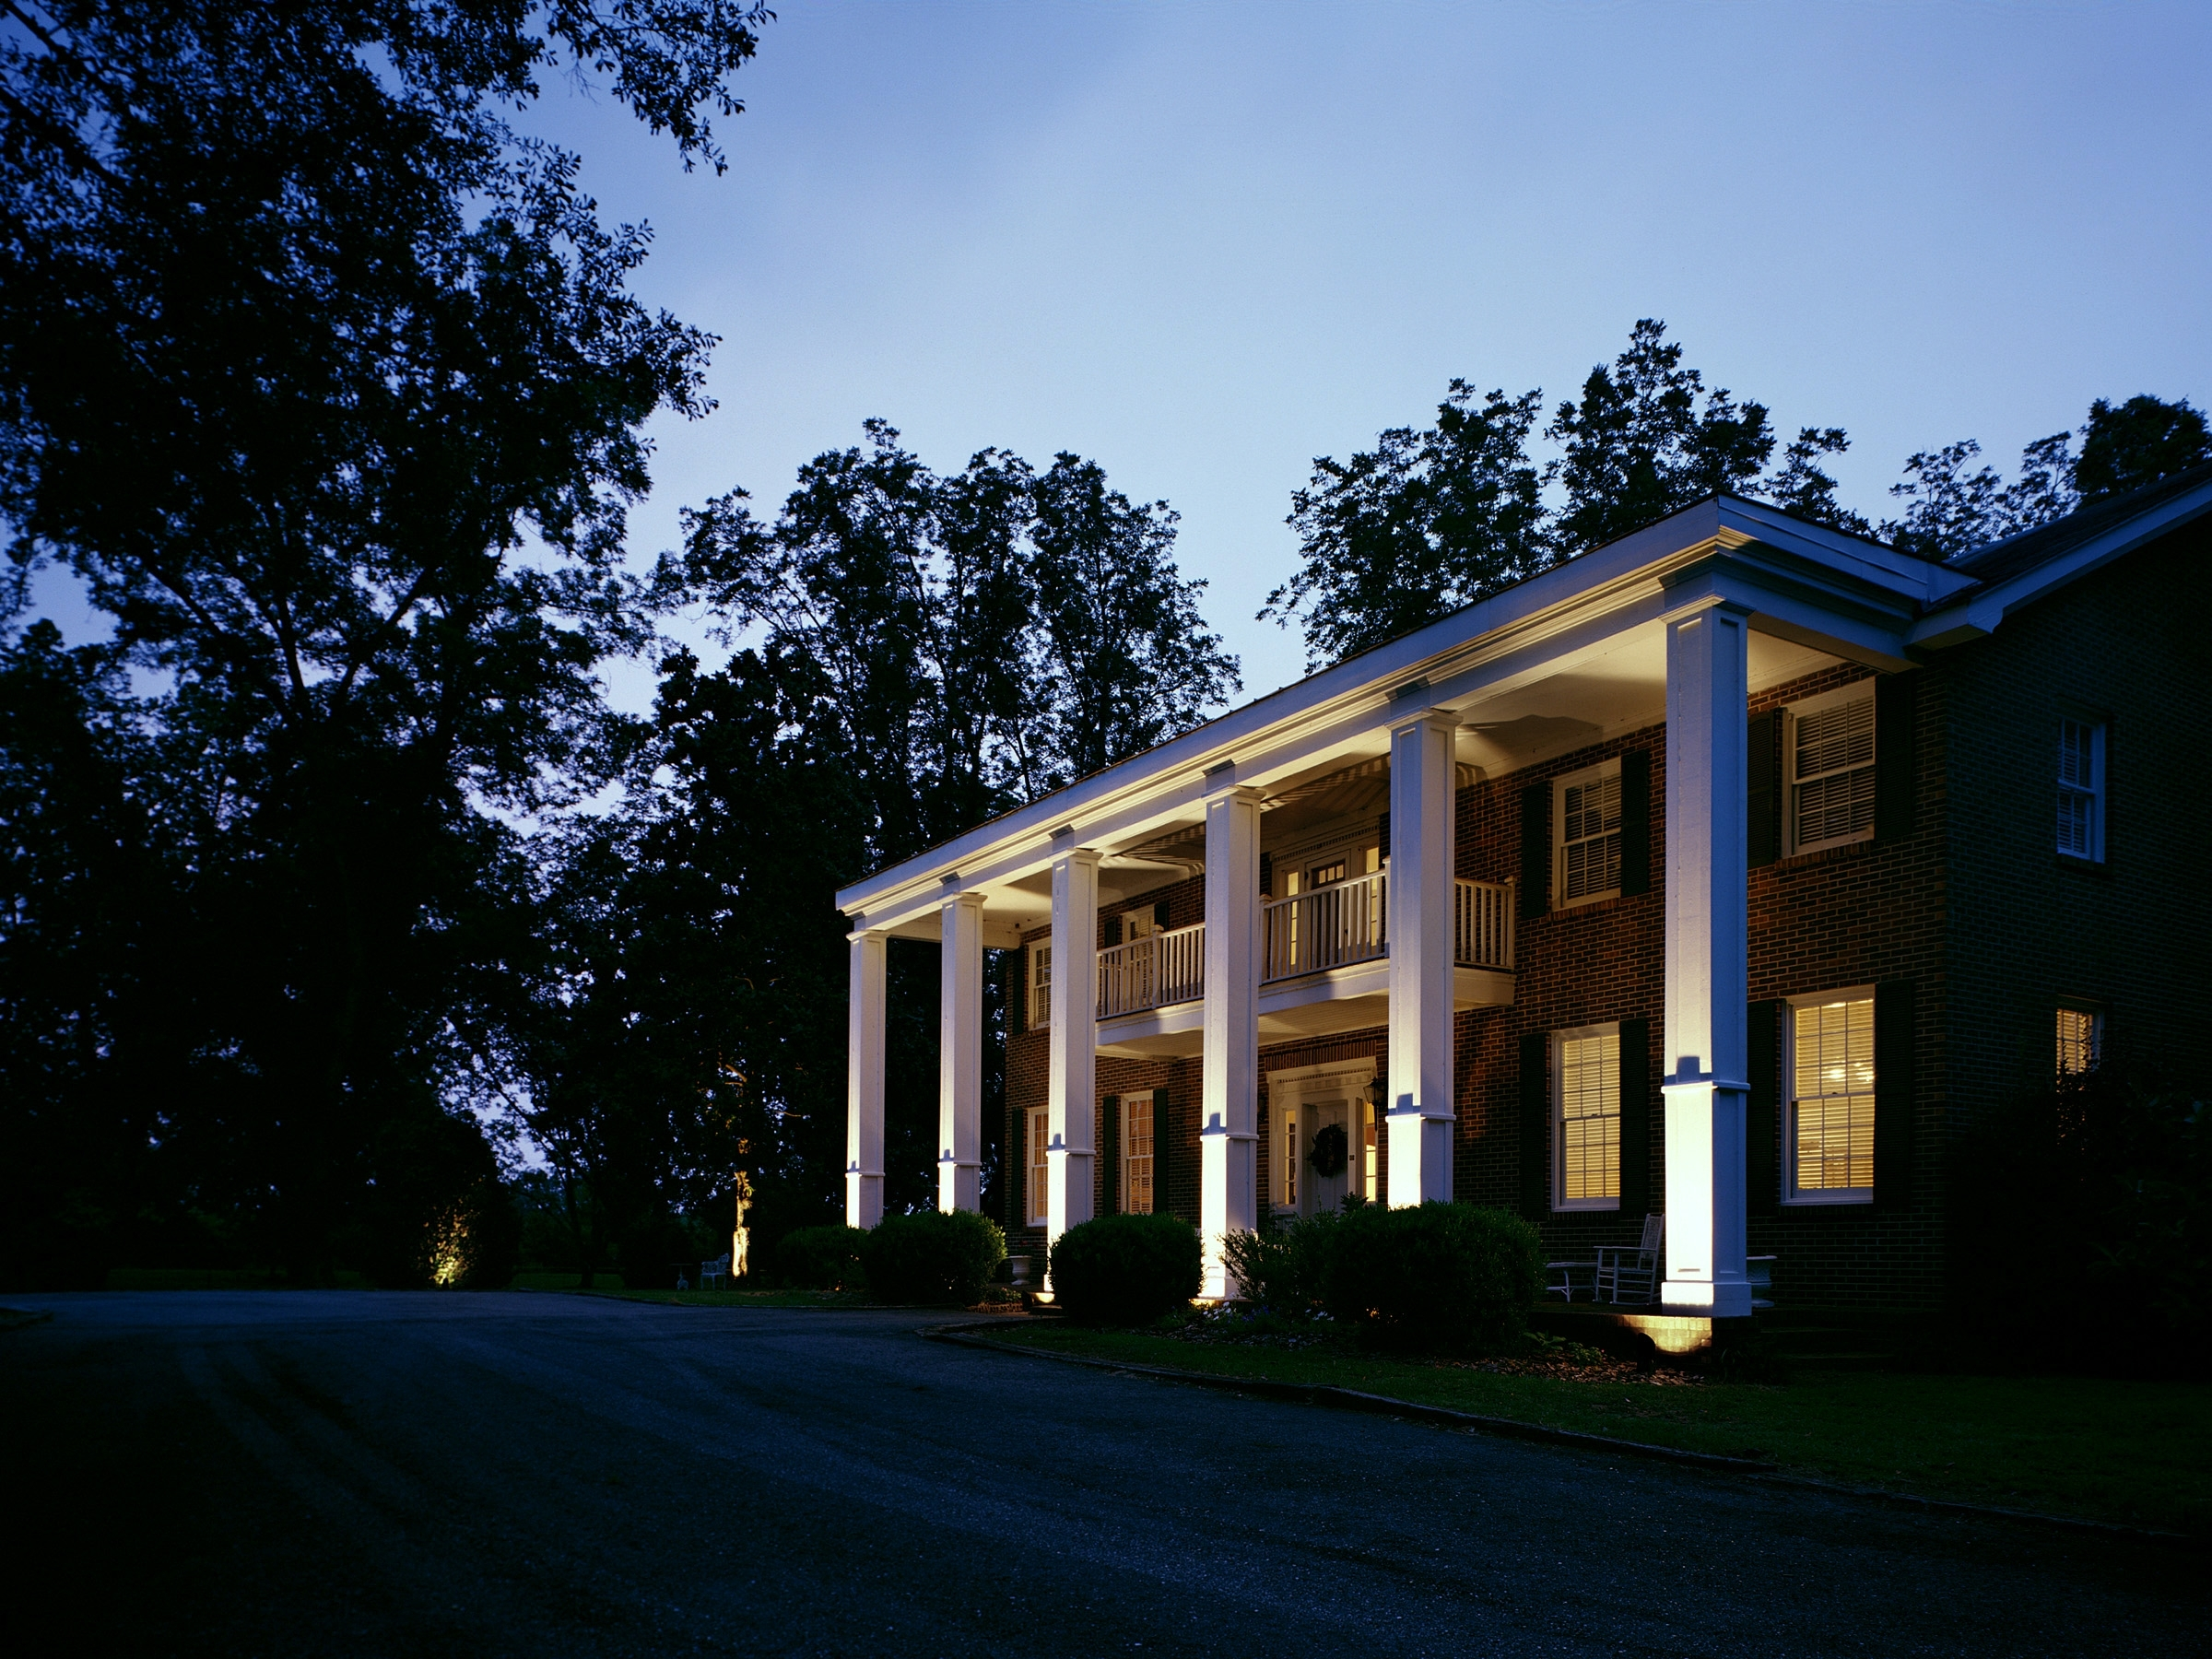 Outdoor Lighting Pillars – Outdoor Lighting Ideas For Best And Newest Outdoor Lanterns For Pillars (View 9 of 20)